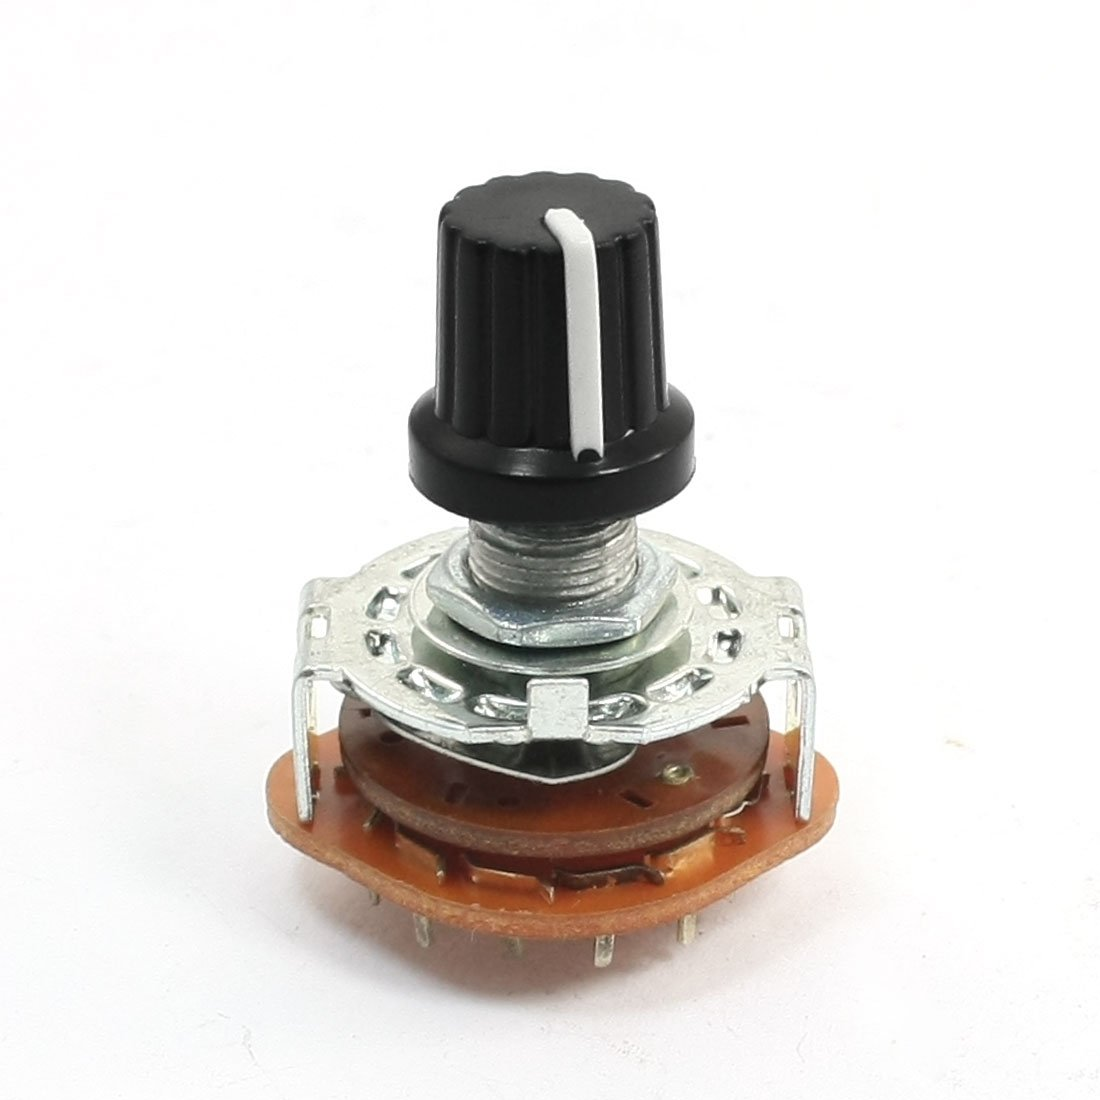 Uxcell 6mm Dia Shaft 2 Pole 6 Position Band Channel Way Switch Positions Selector Rotary Electronics